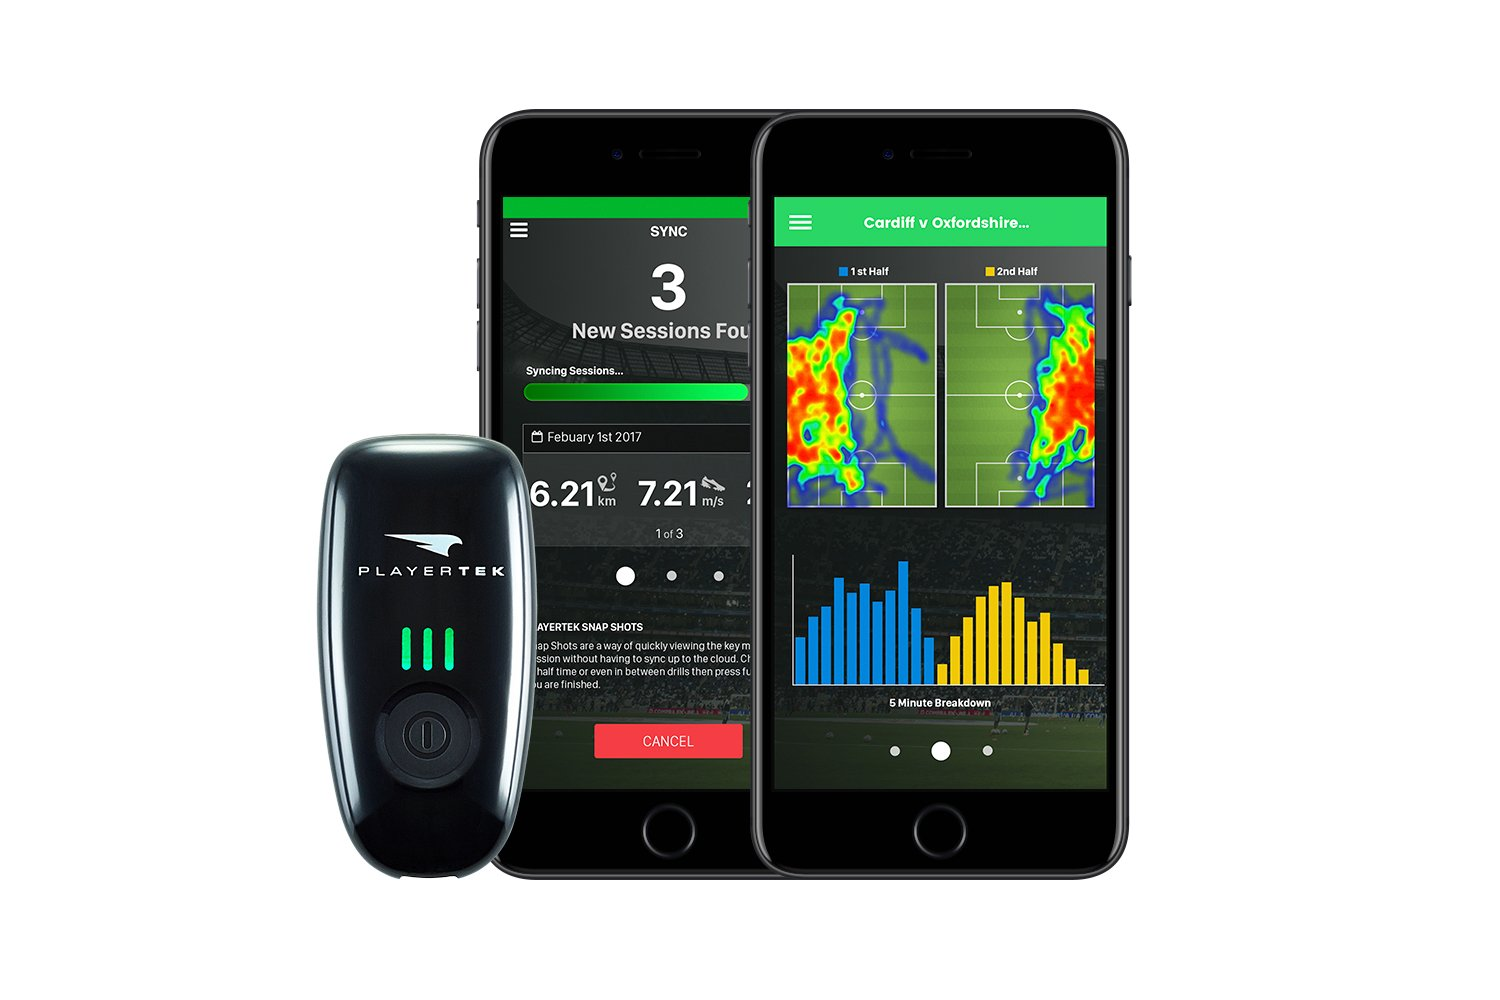 PLAYERTEK Wearable GPS Tracker for Football with App to Track and Improve  Your Game - on iPhone and Android